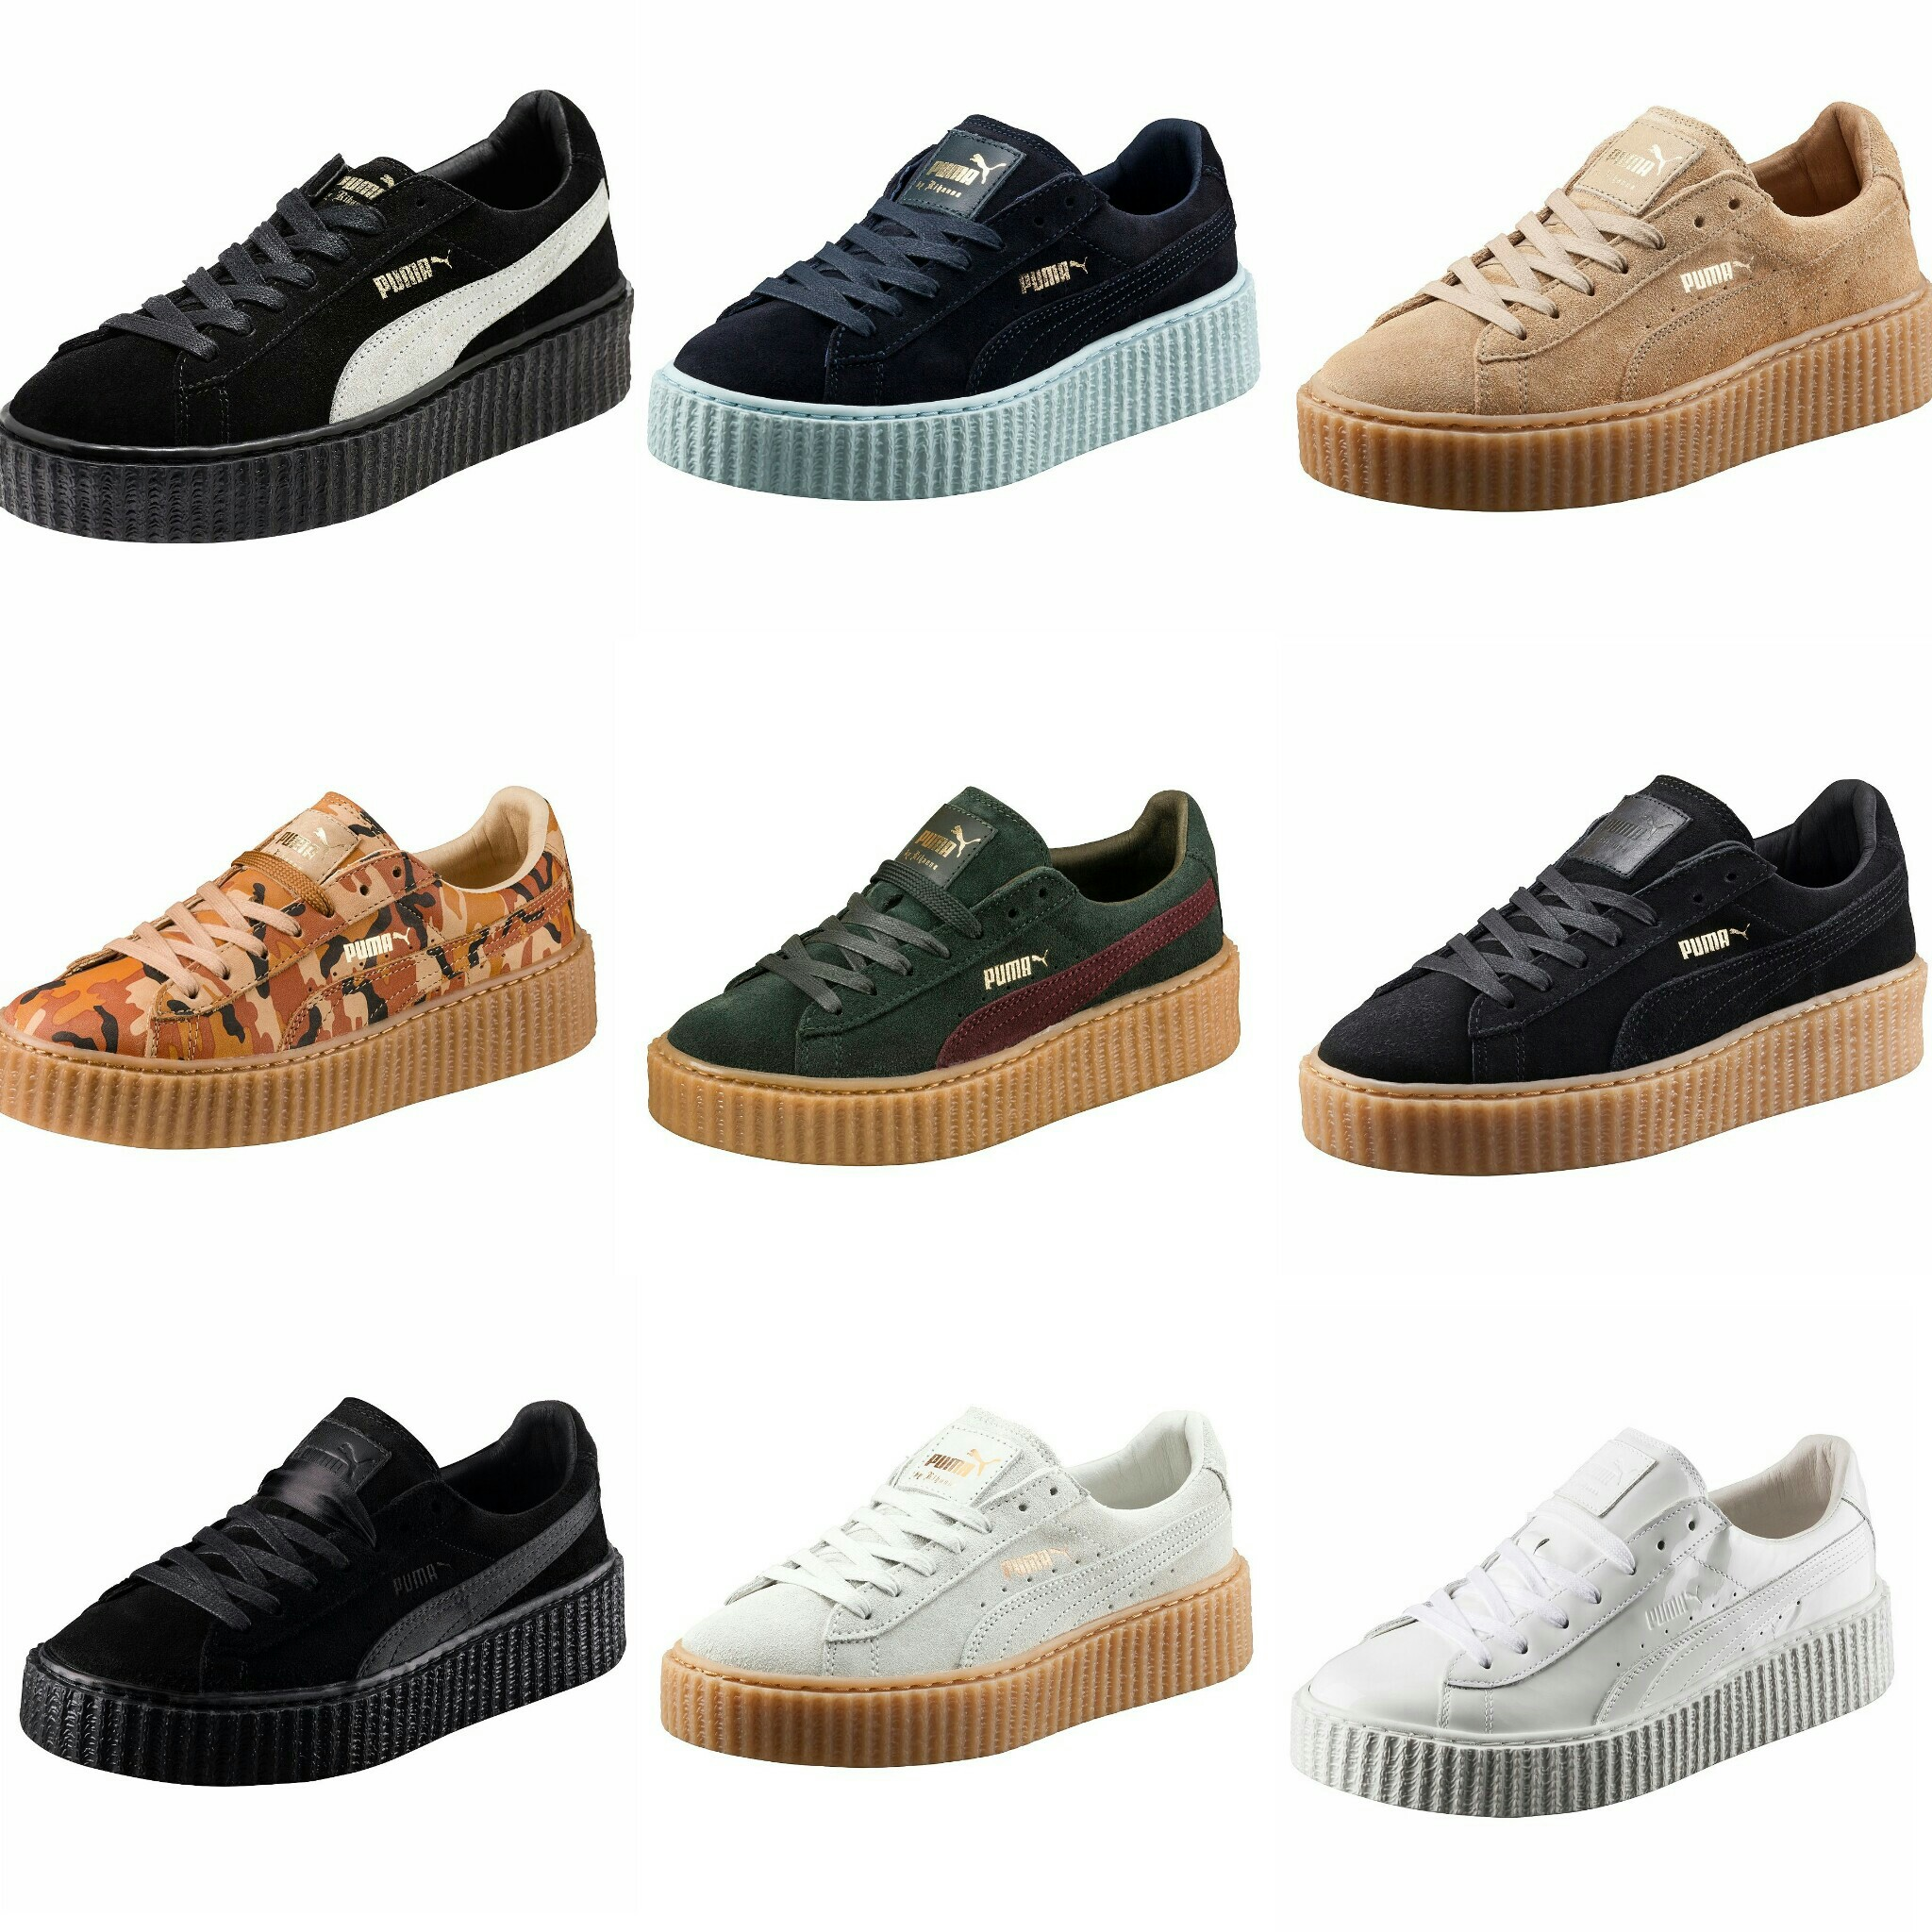 Creepers for Guys & Girls As time has creeped by, one shoe has endured – the creeper. The creeper continuous to be the shoe for the adventurous, rebellious, and boldest among us.